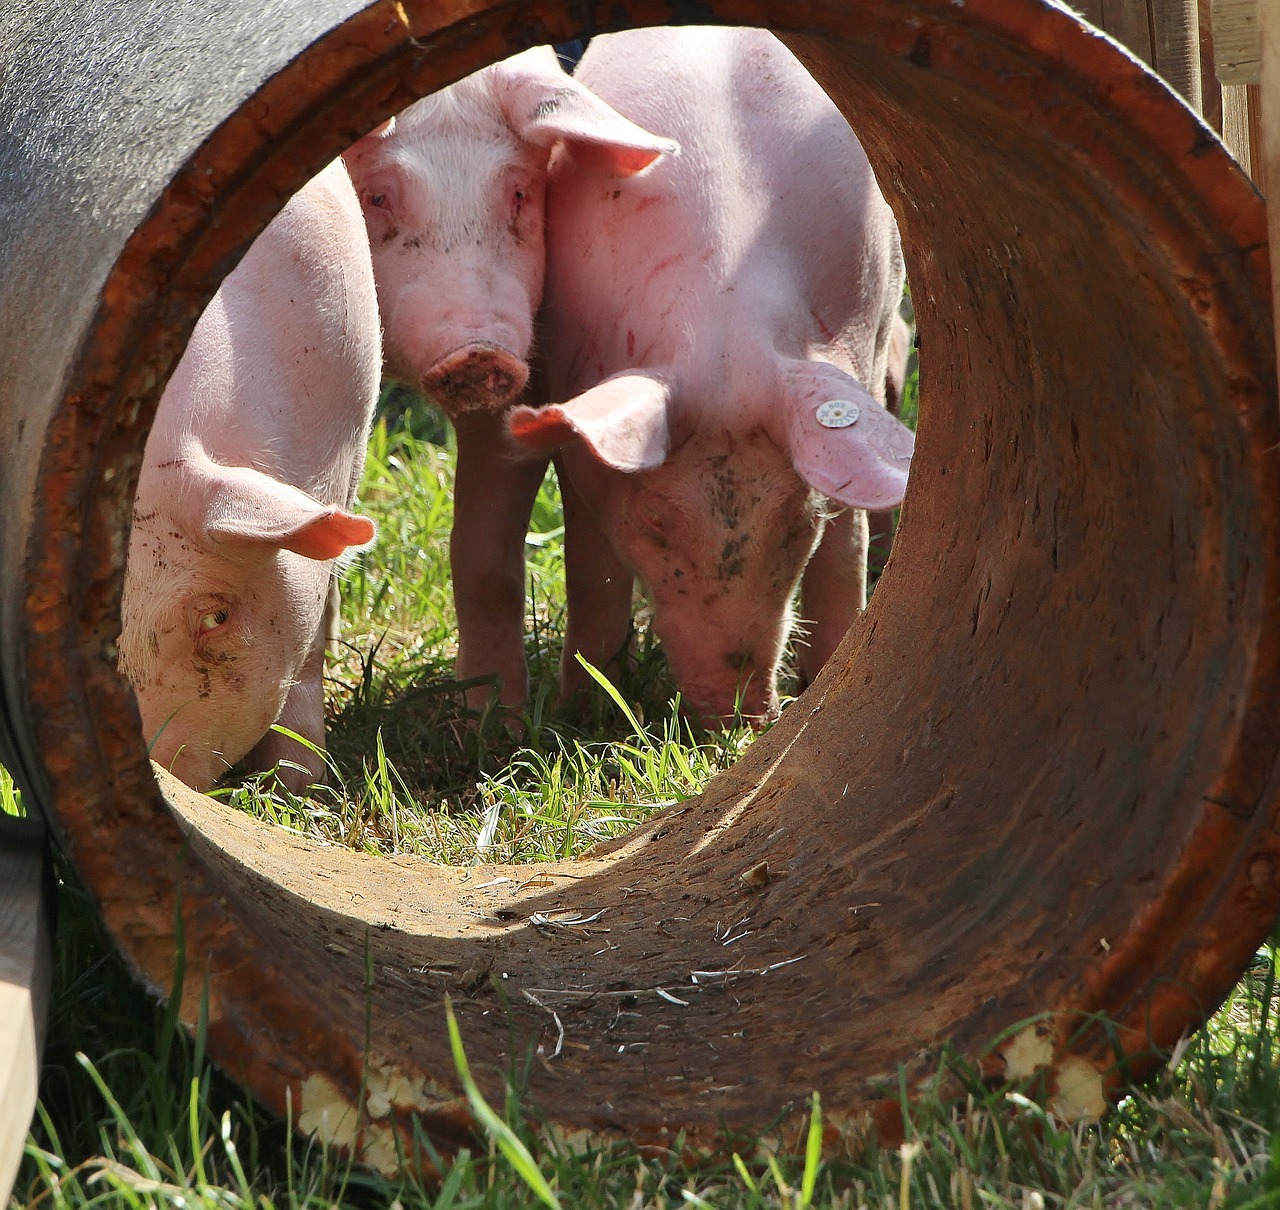 Strong Increase In The Export Of Pork At The End Of The Year, According To The EU